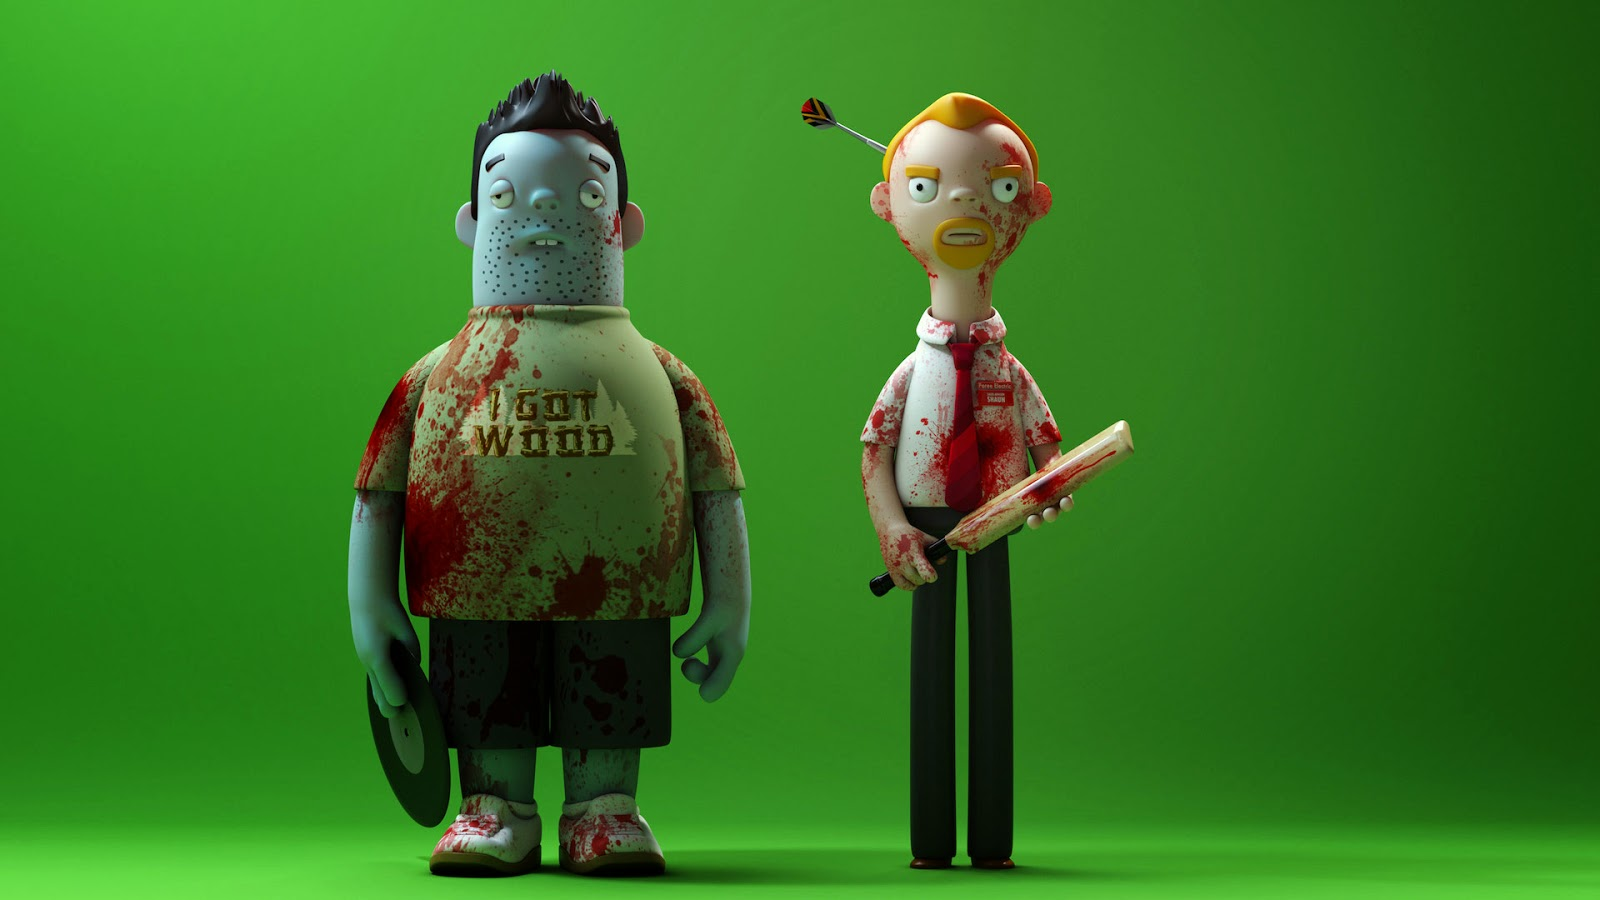 Vinyl Idolz - Shaun of the Dead (Funko)